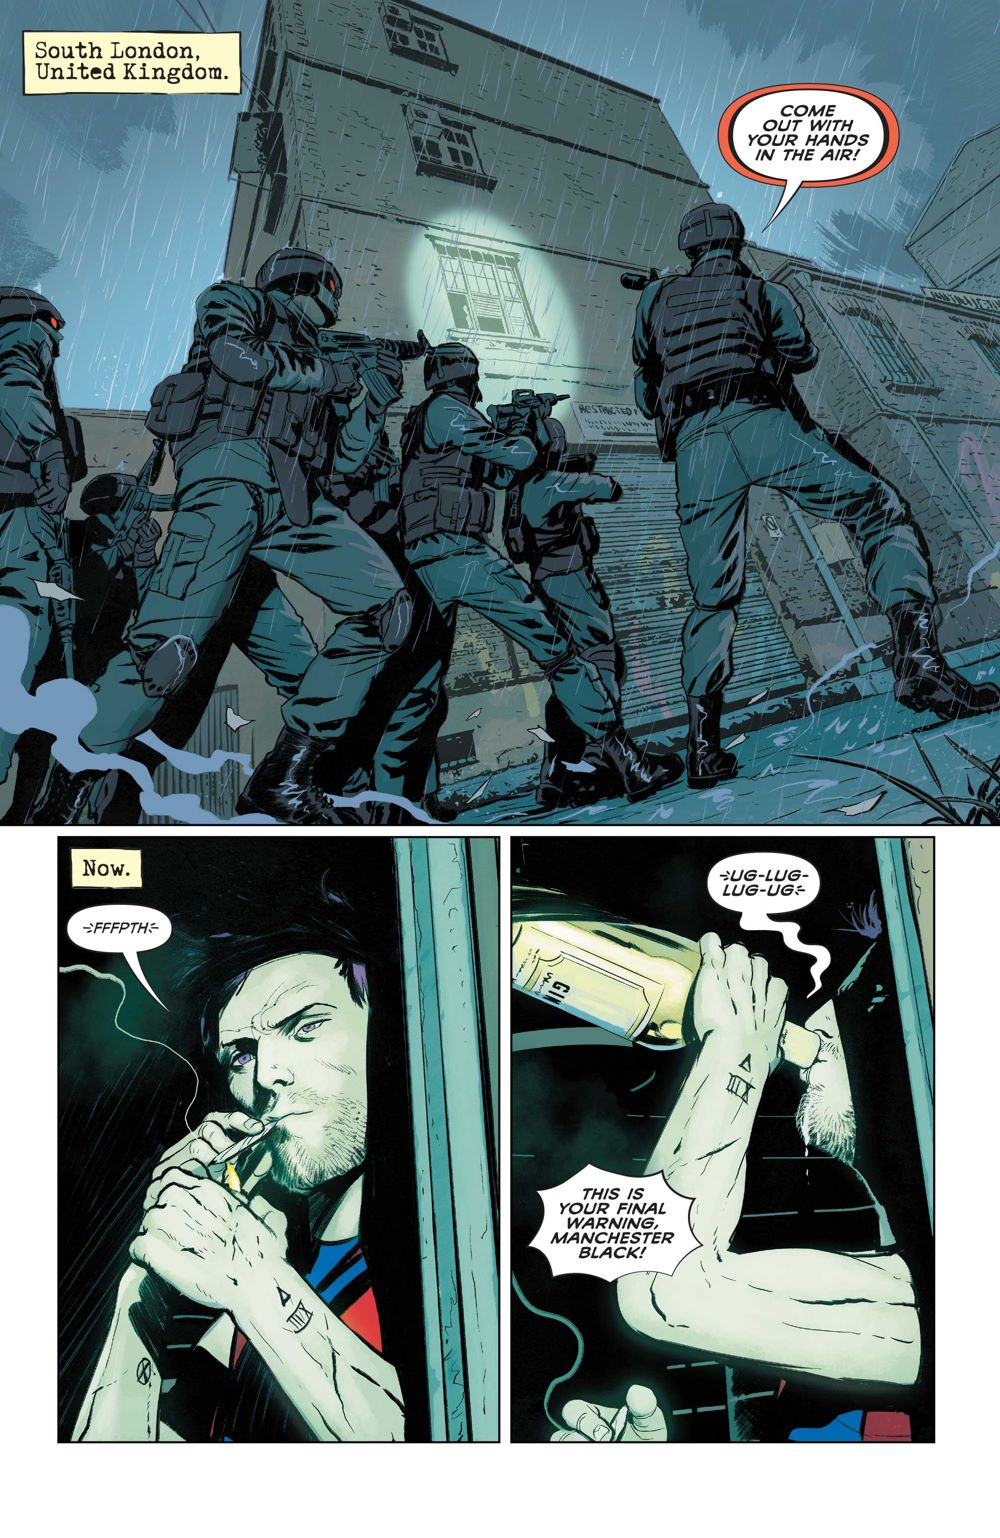 Superman-and-the-Authority-1-8_60ee5ffd1b0619.46907479 ComicList Previews: SUPERMAN AND THE AUTHORITY #1 (OF 4)